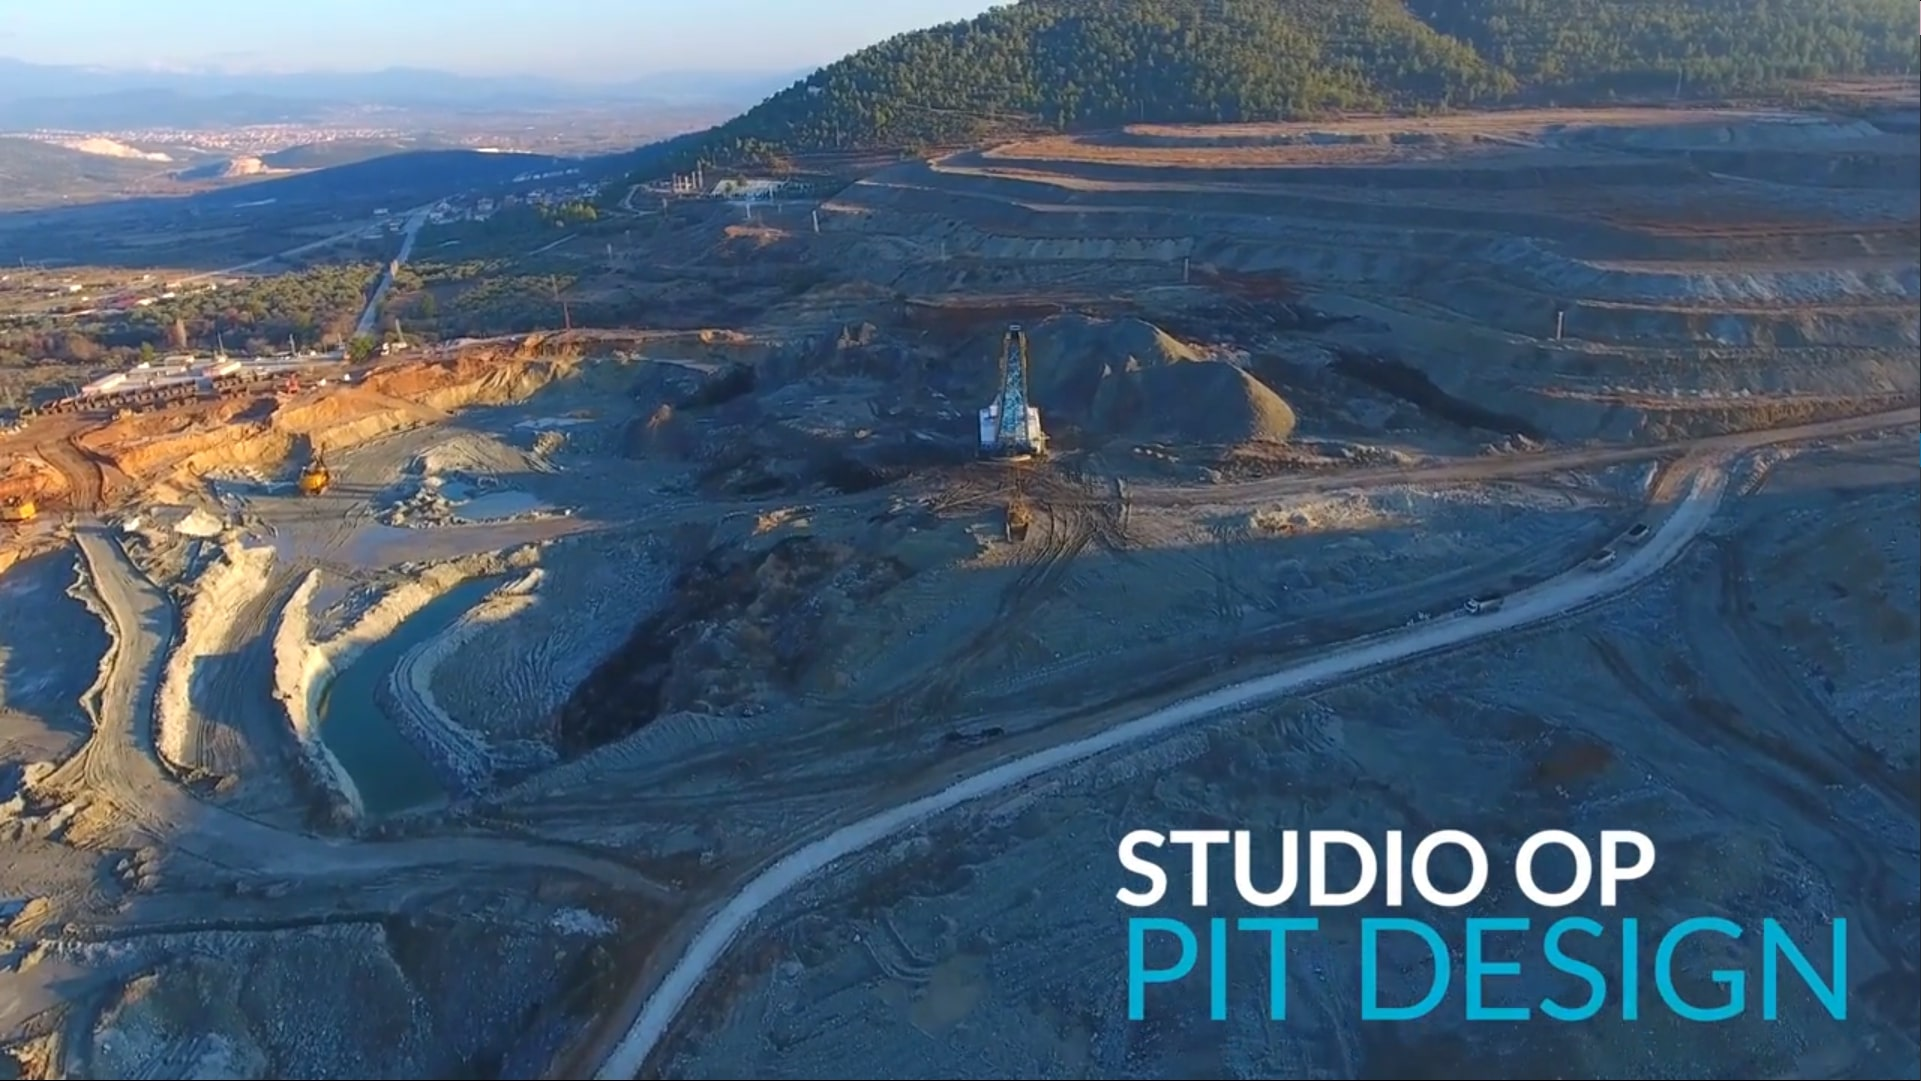 Screenshot of the title screen of the Studio OP Pit Design Video Talking about Studio OP's Open Pit Design Functions